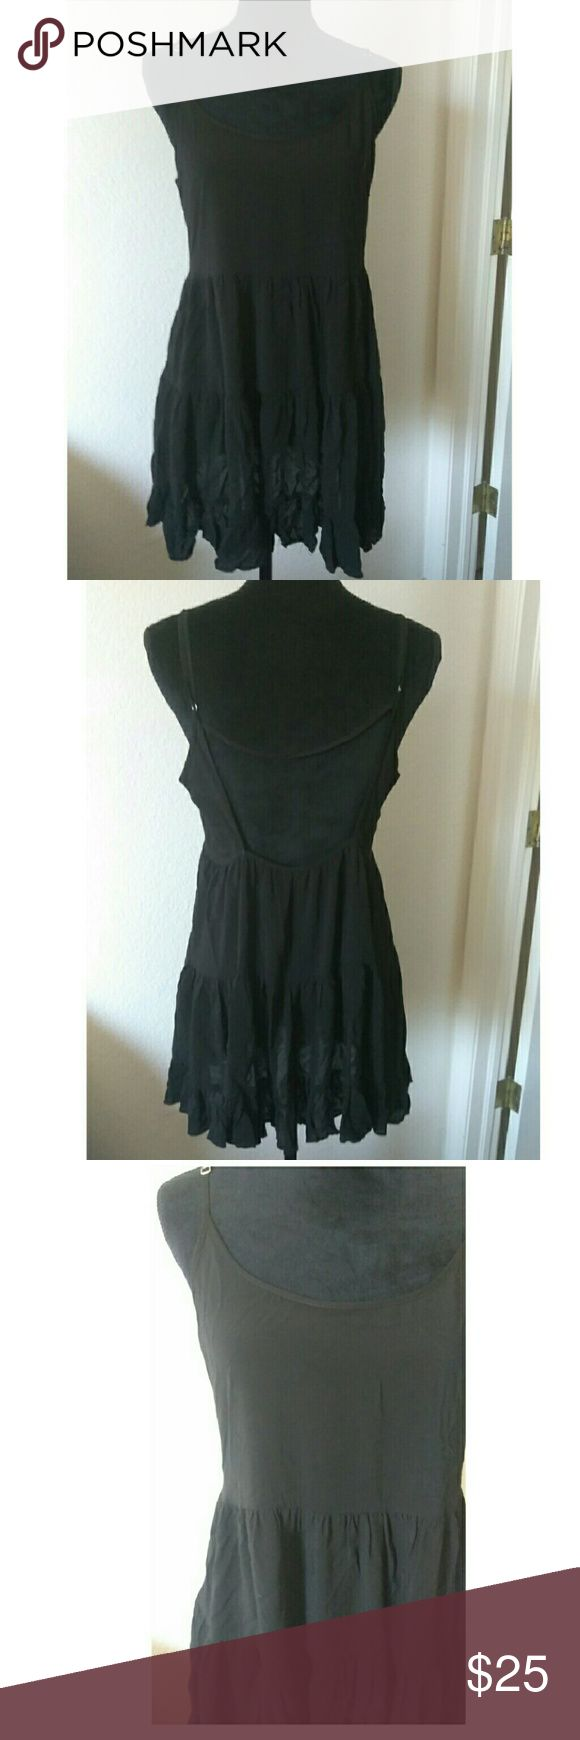 🆕 Brandy Melville Black Cover Up Dress Simple but yet beautiful sheer black sun cover up dress. Spaghetti straps. One Size . 100% Rayon. Brandy Melville Dresses